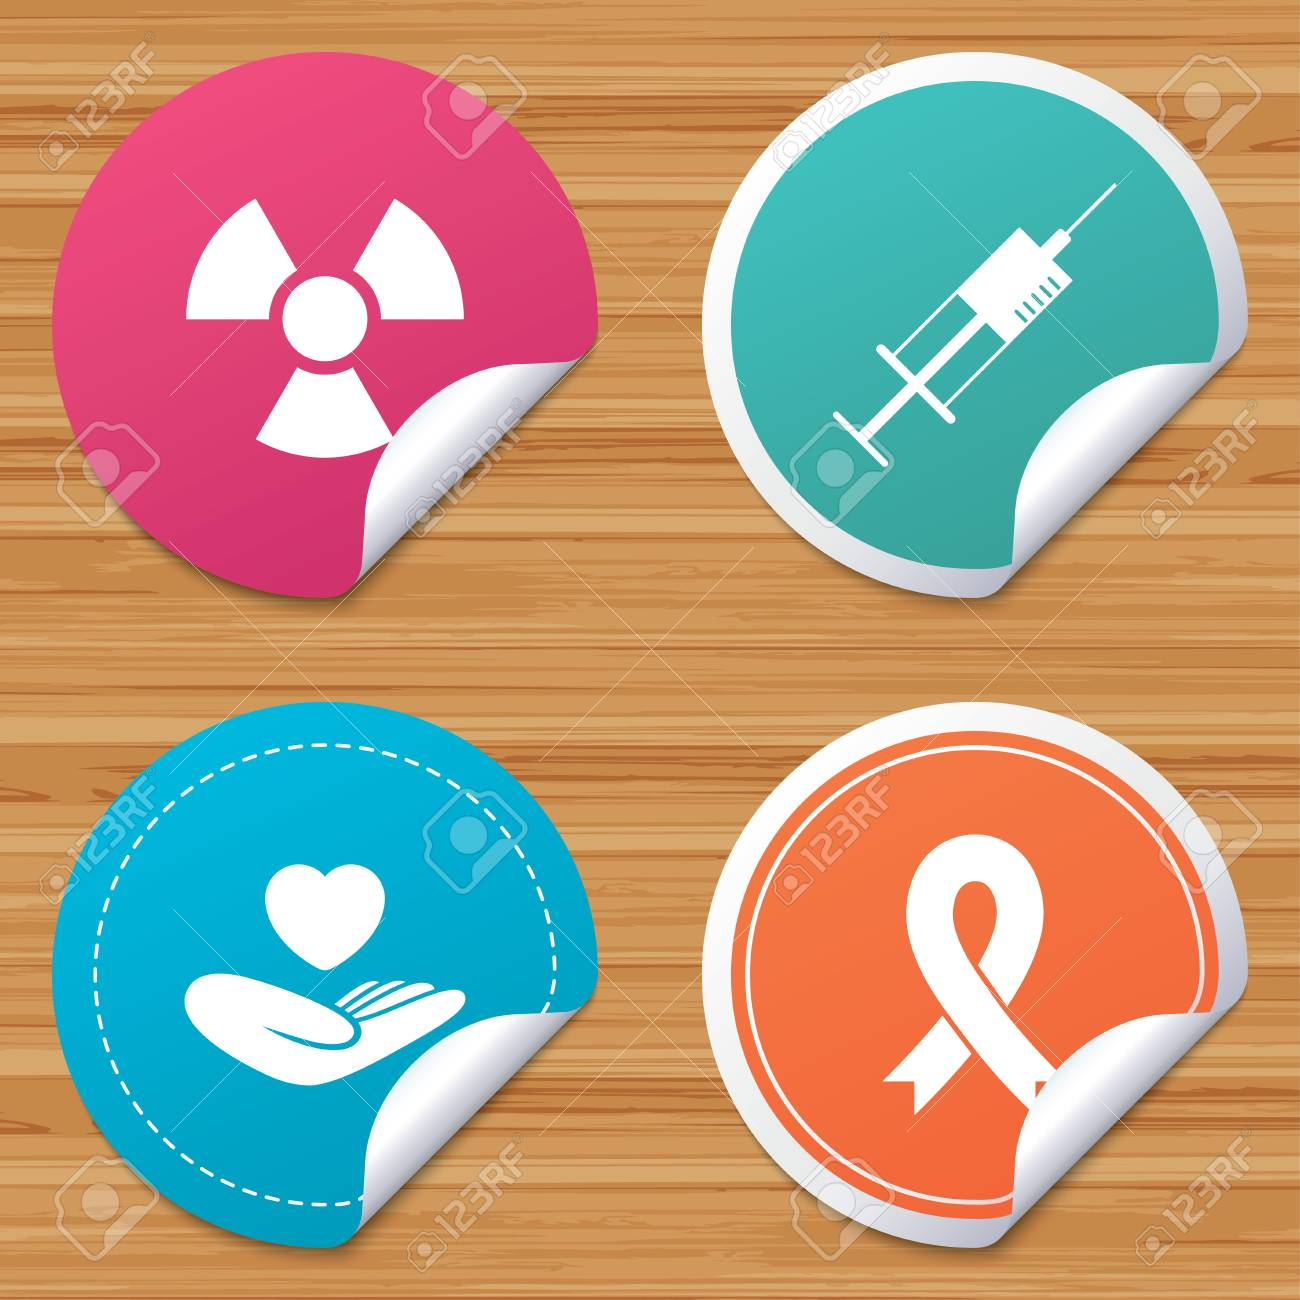 ea22833e296 Round stickers or website banners. Medicine icons. Syringe, life insurance,  radiation and